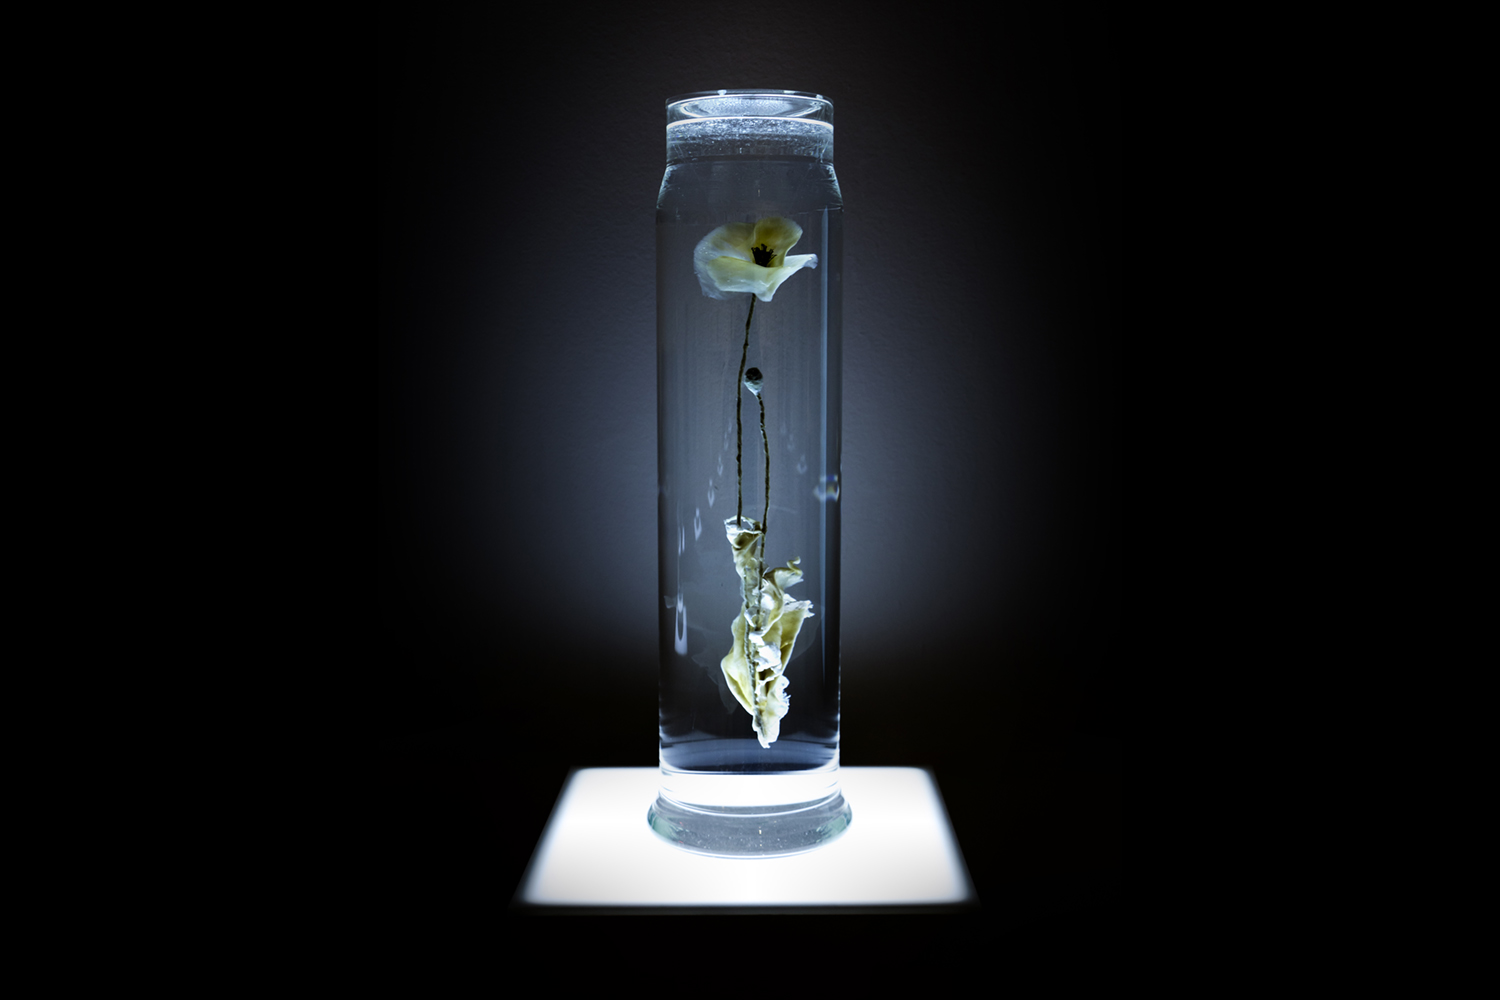 Papaver Rhoeas. Lamb's heart tissue, glass, water. The Lowry. 2017